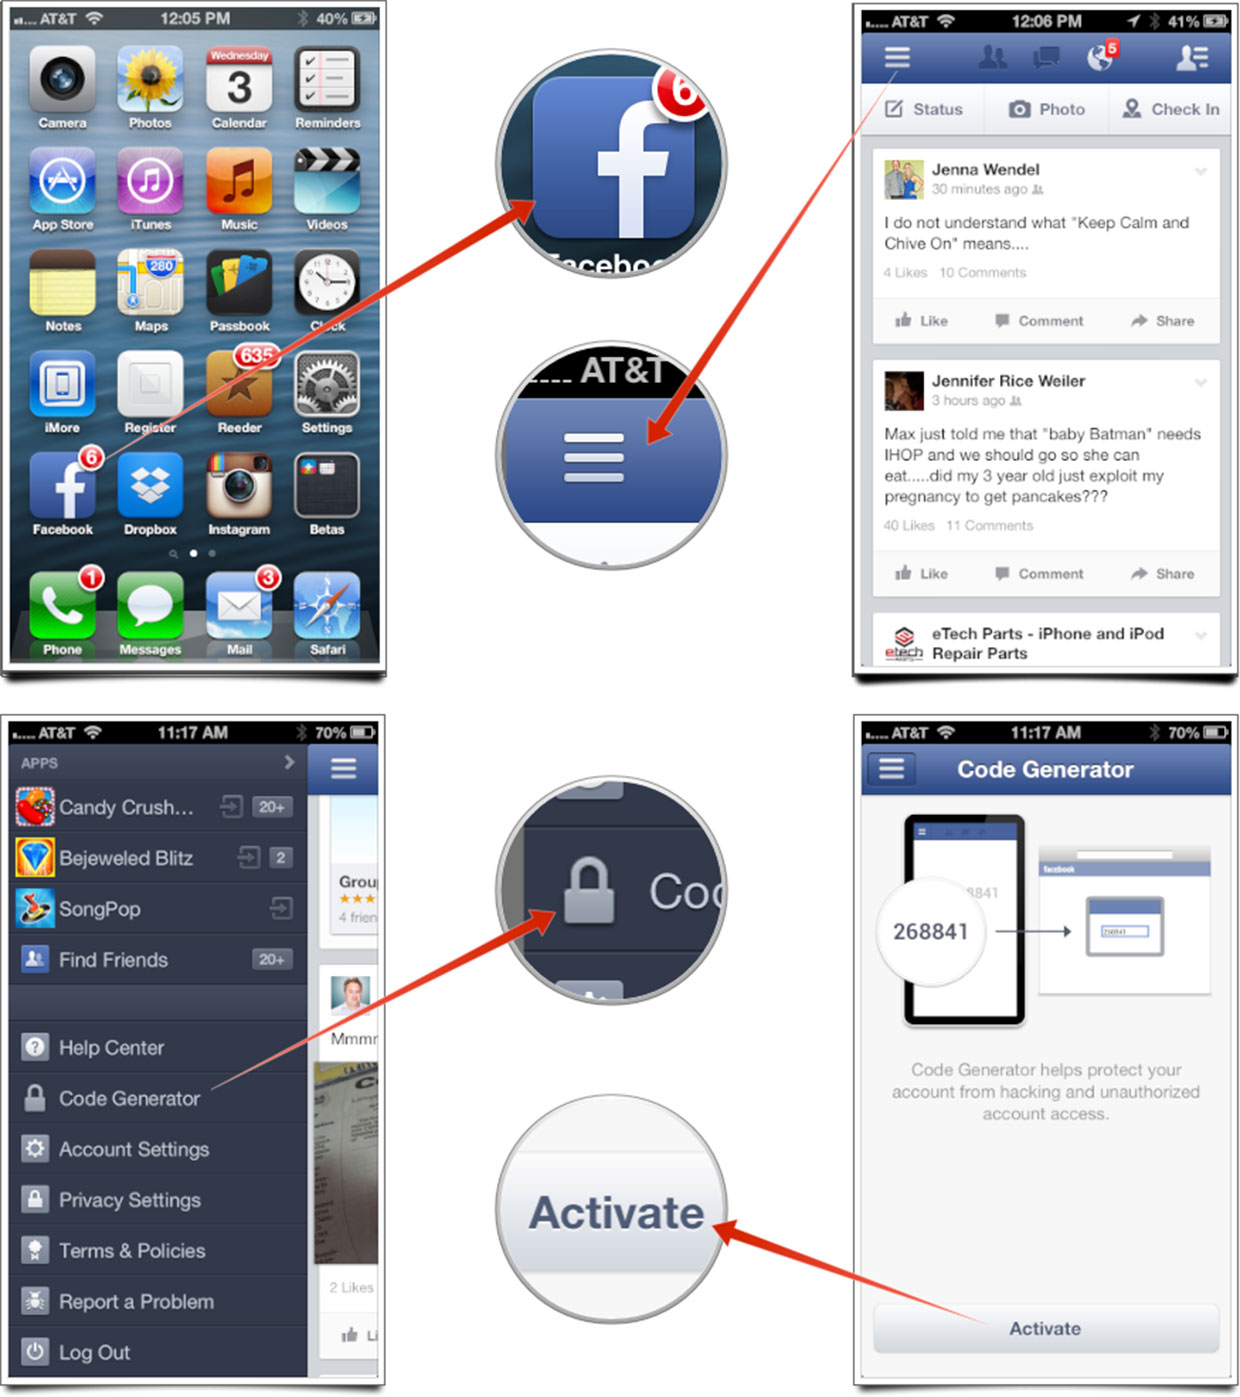 How to add extra security to your Facebook account on iPhone